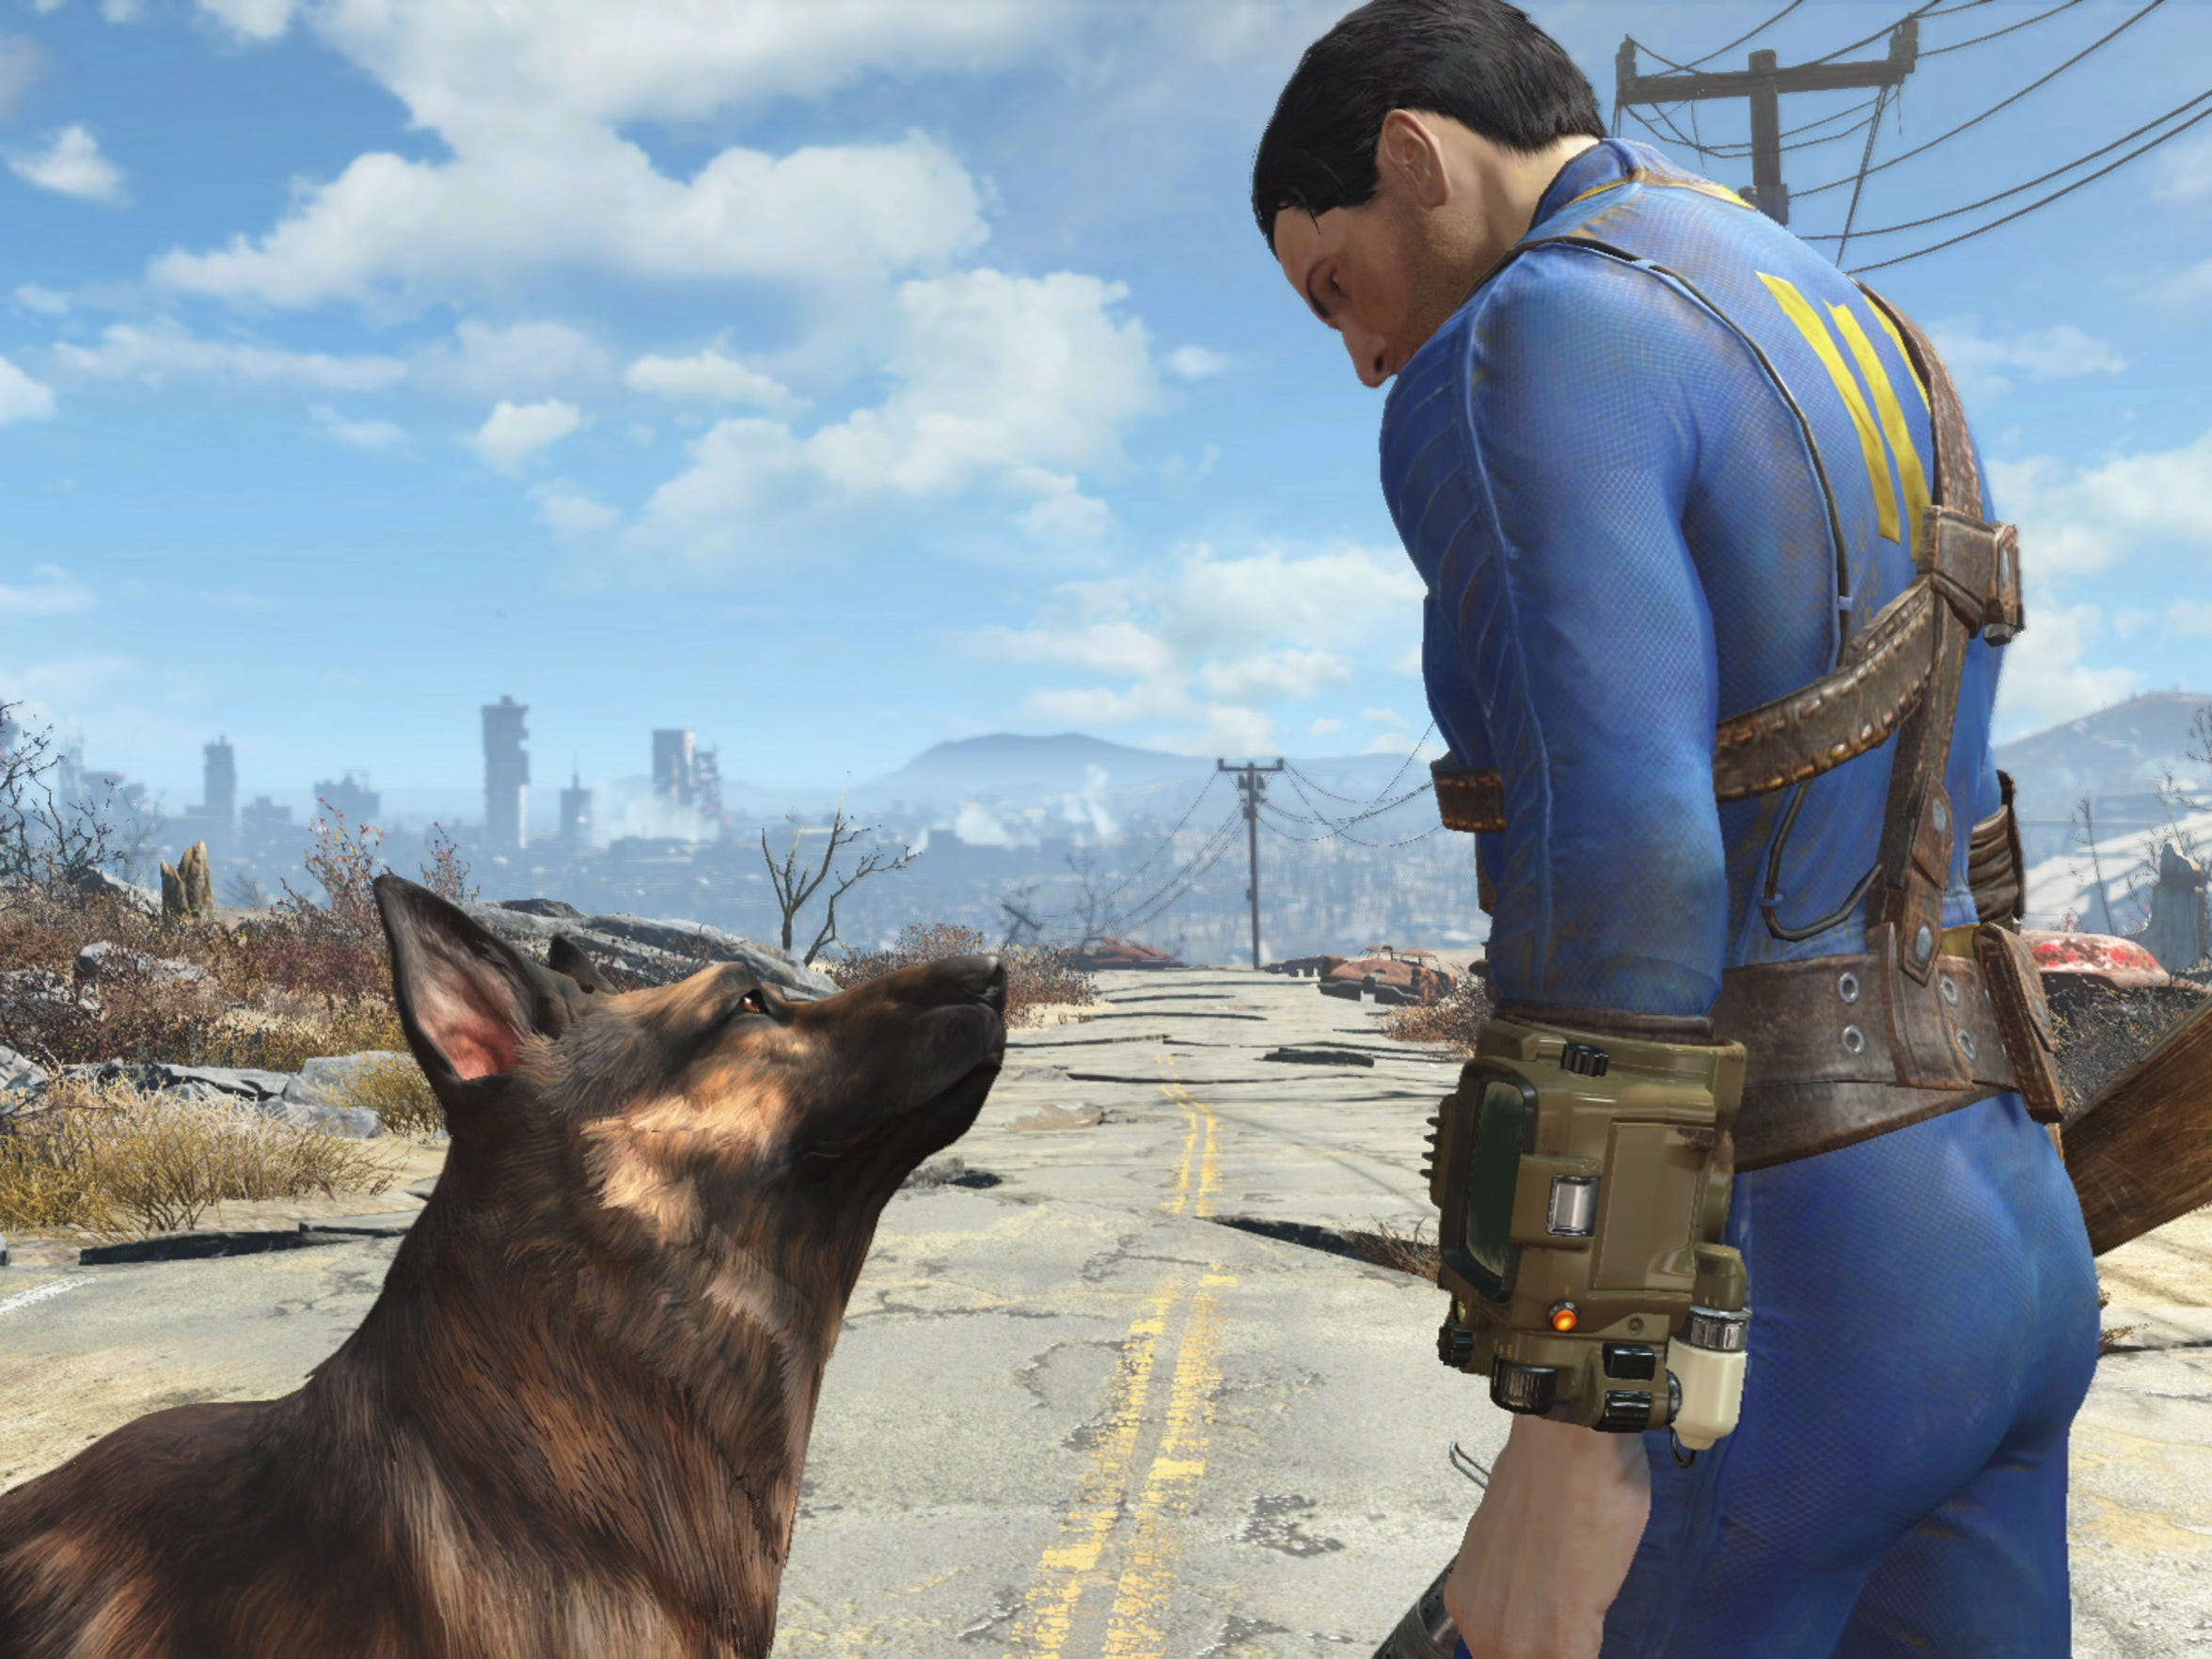 Meet your trusty pal Dogmeat in Fallout 4. Yes, the